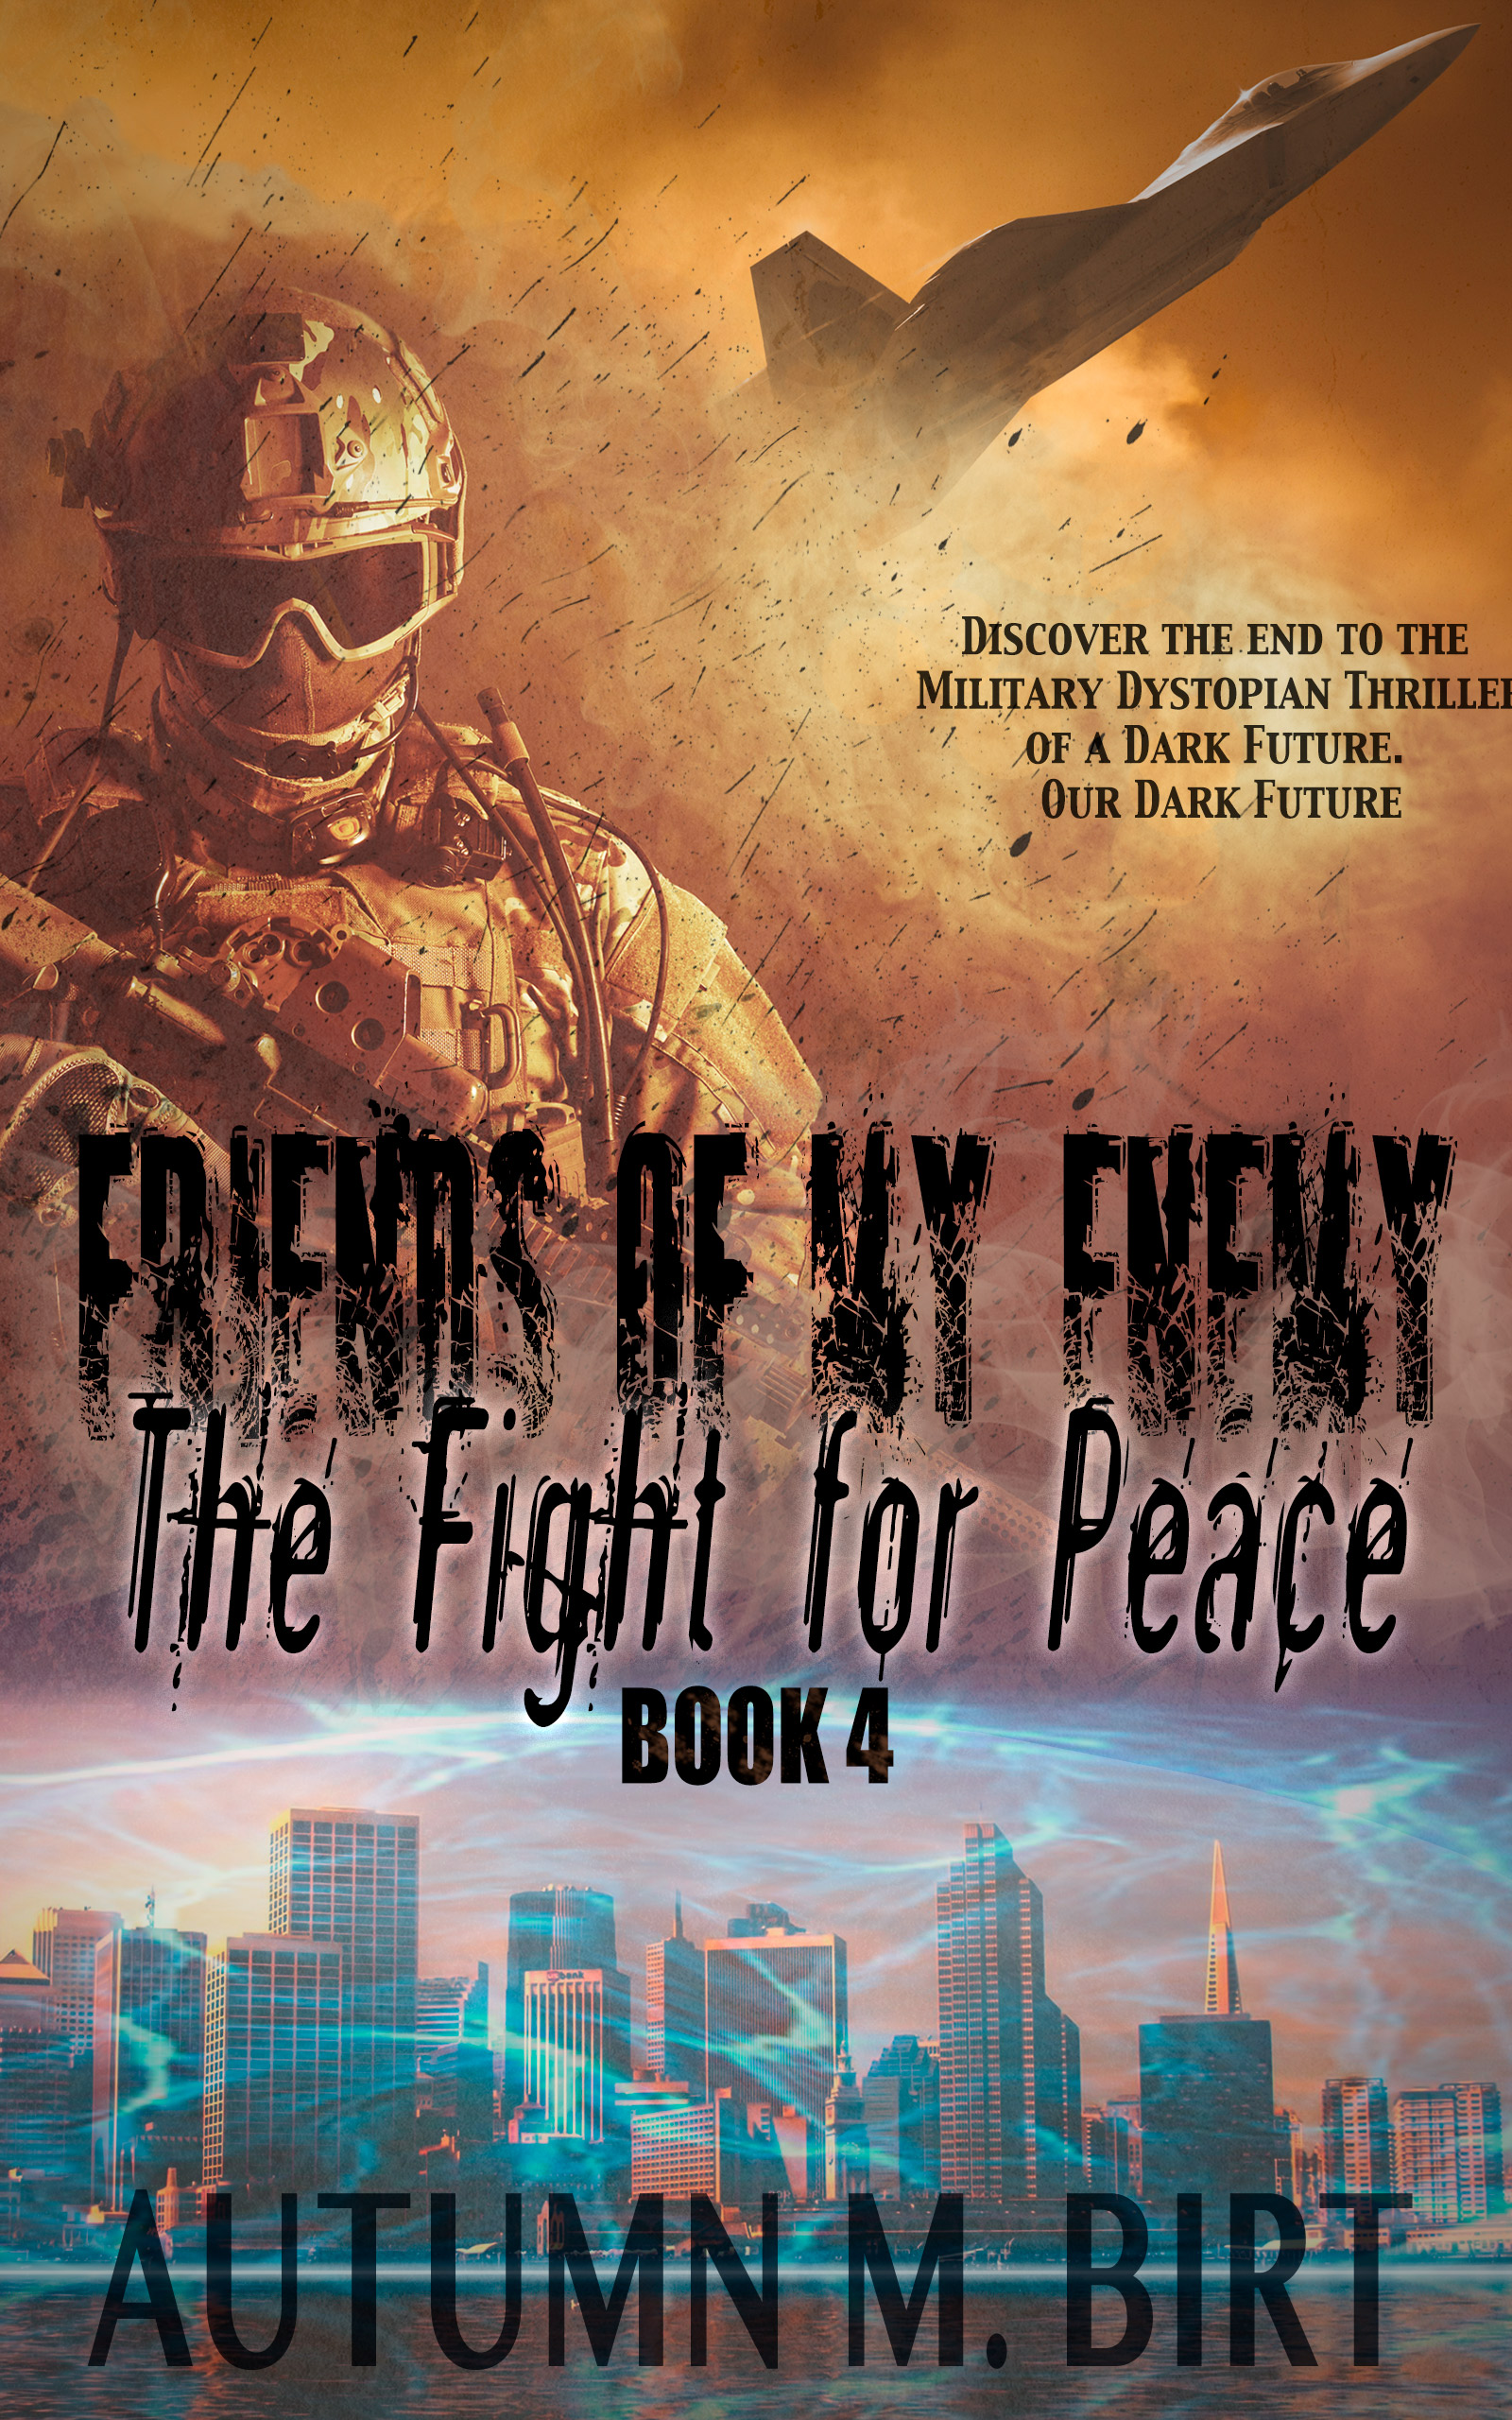 Friends of my Enemy Fight for Peace